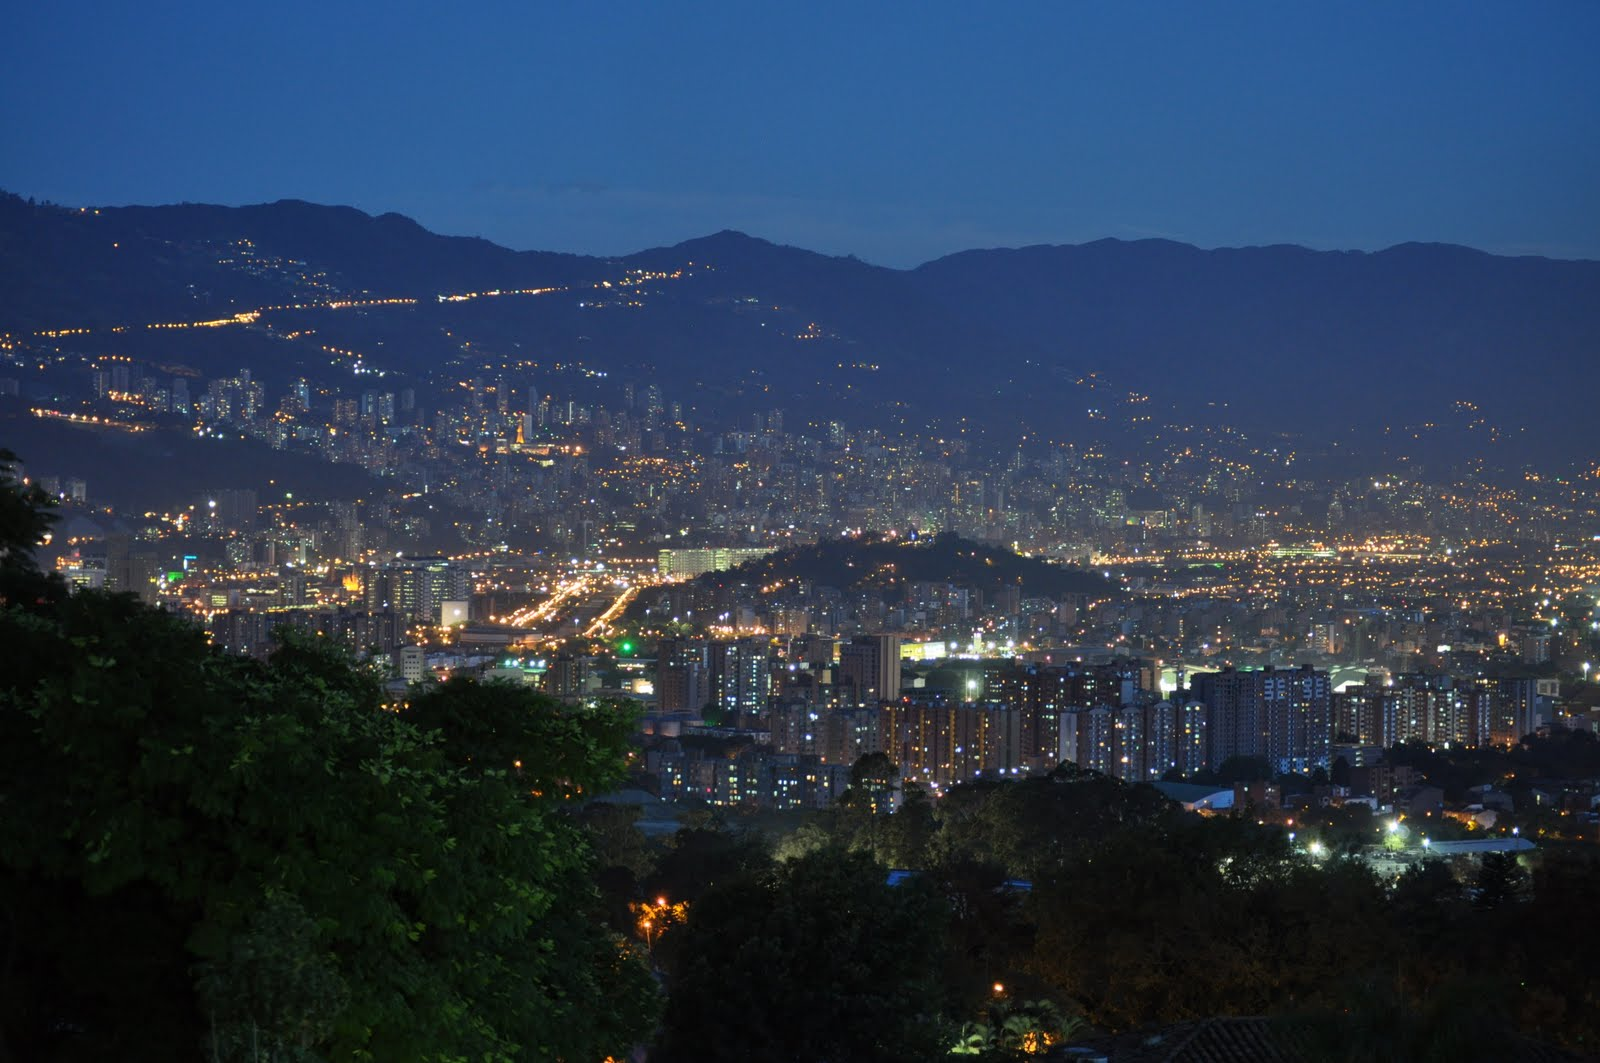 Ideas for a Medellin Colombia Bachelor Party itinerary!